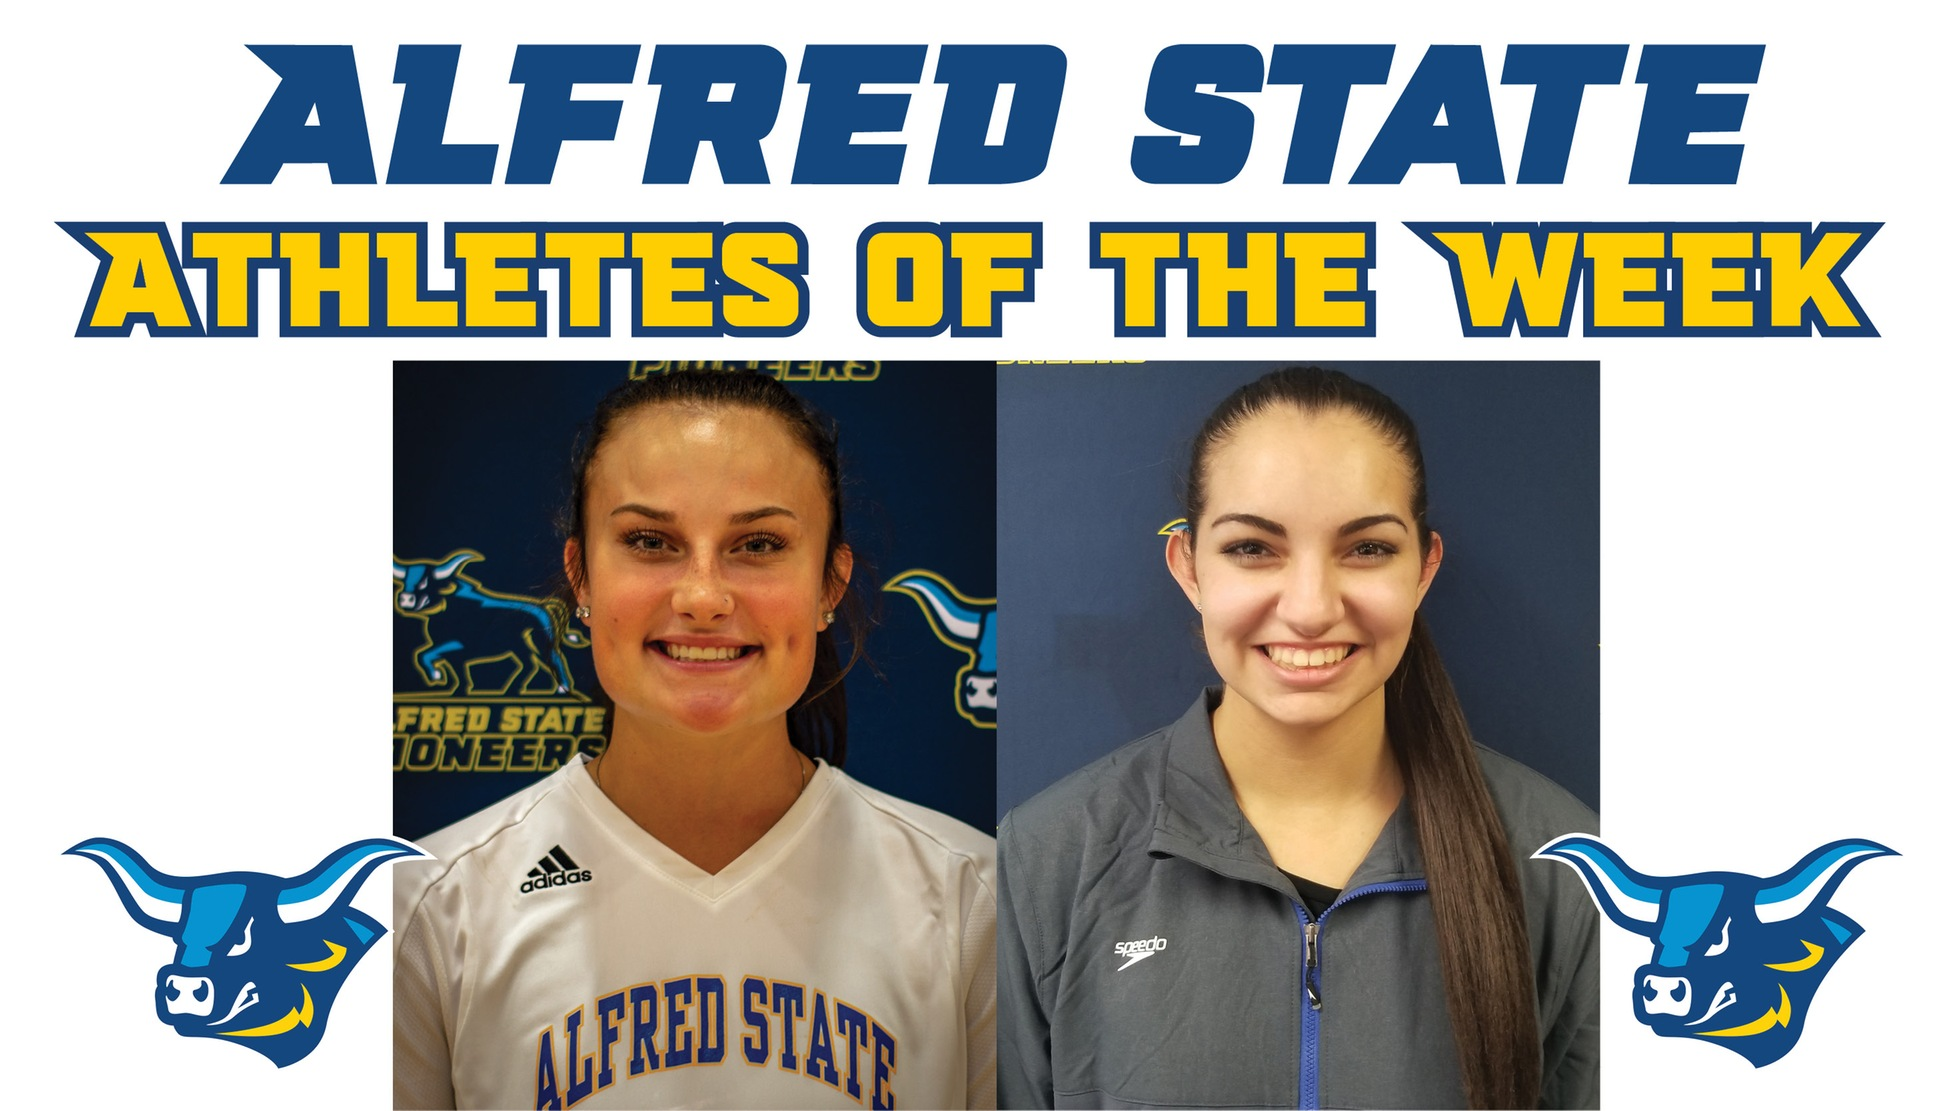 Maggie Meyer and Jessie LaRue named Athletes of the Week